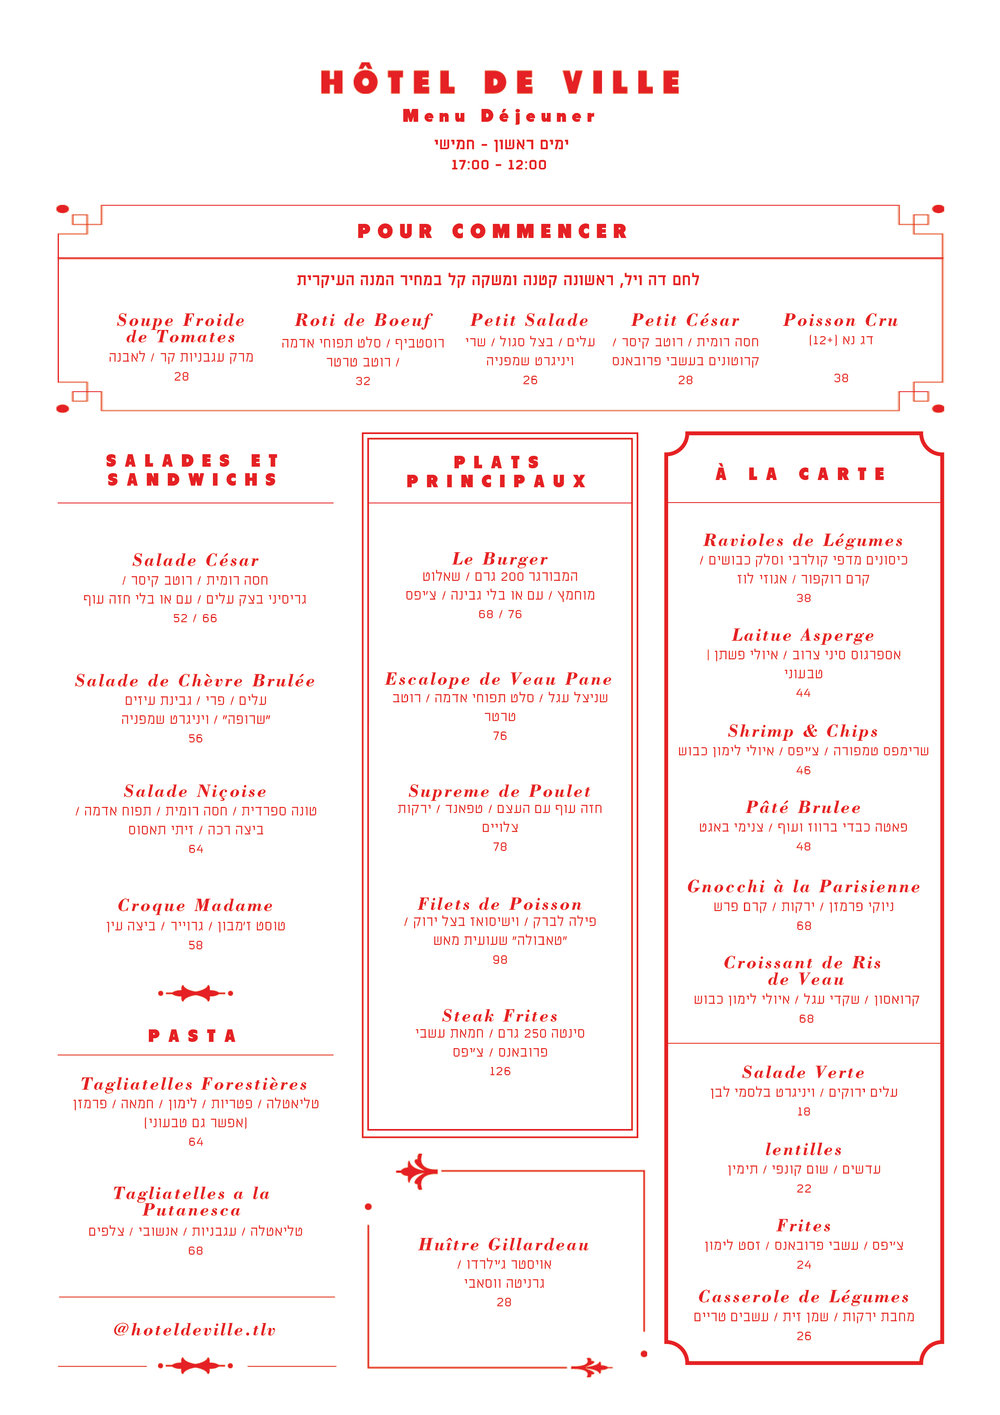 HOTEL_DE_VILLE_LUNCH_MENU-1.jpg